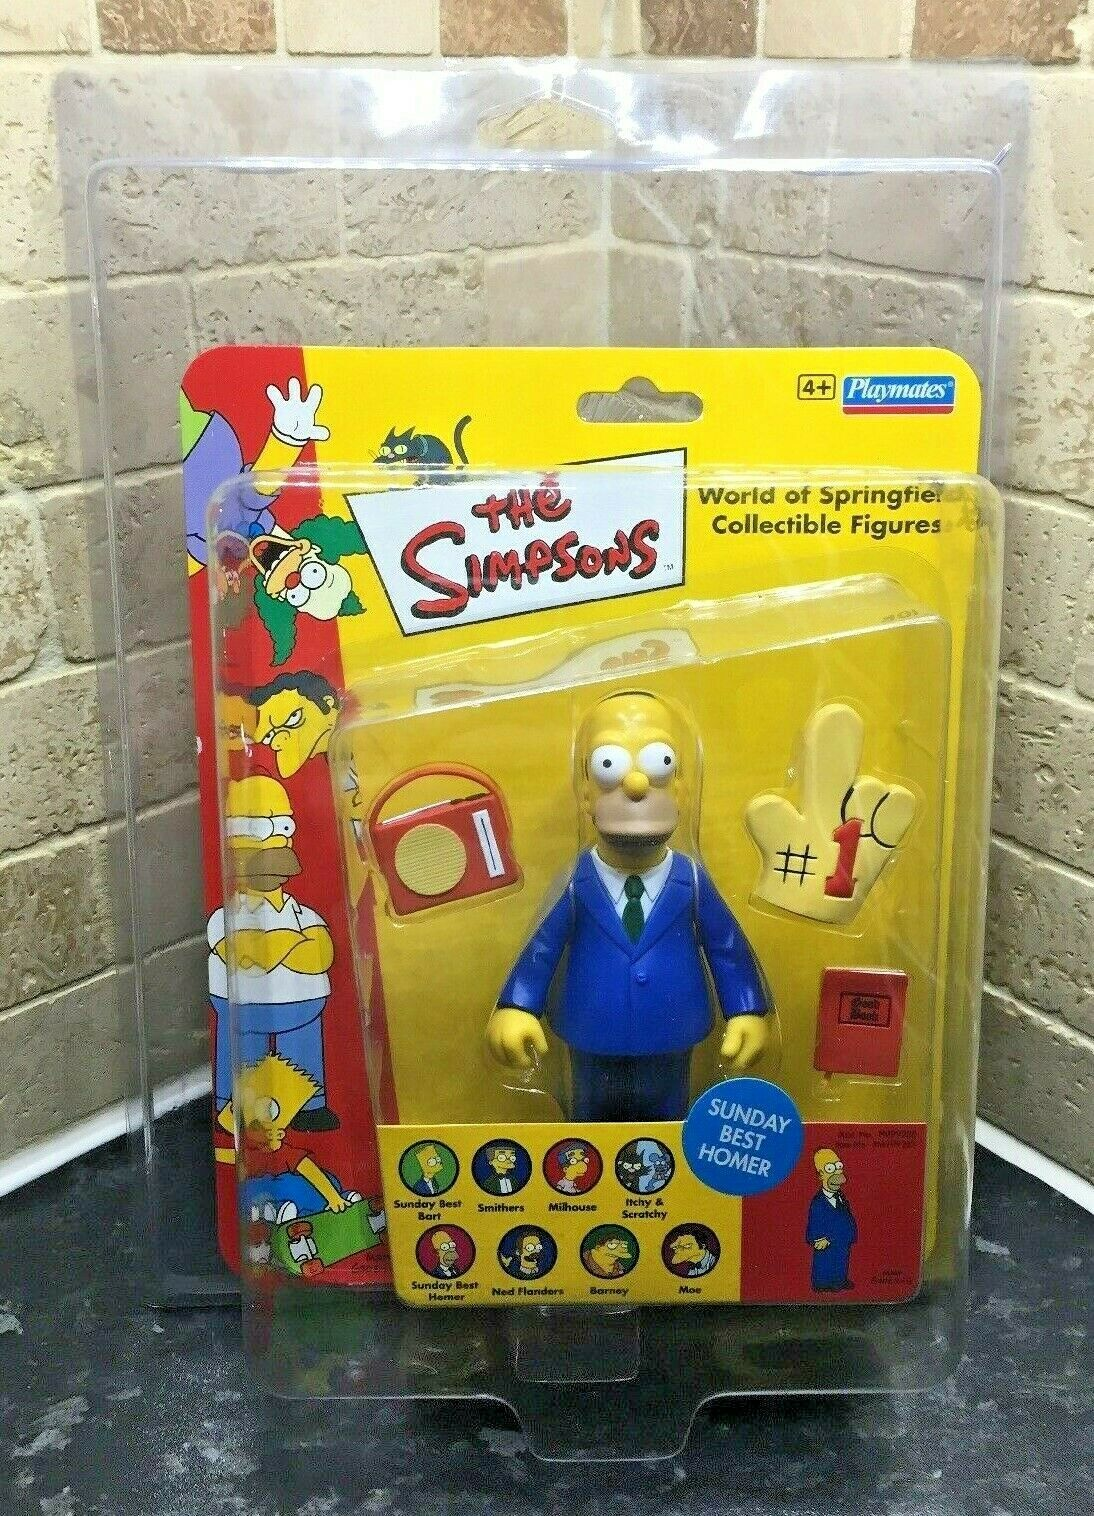 Uk Exclusive Rare The Simpsons Sunday Best Homer WOS Vivid Imaginations Figure